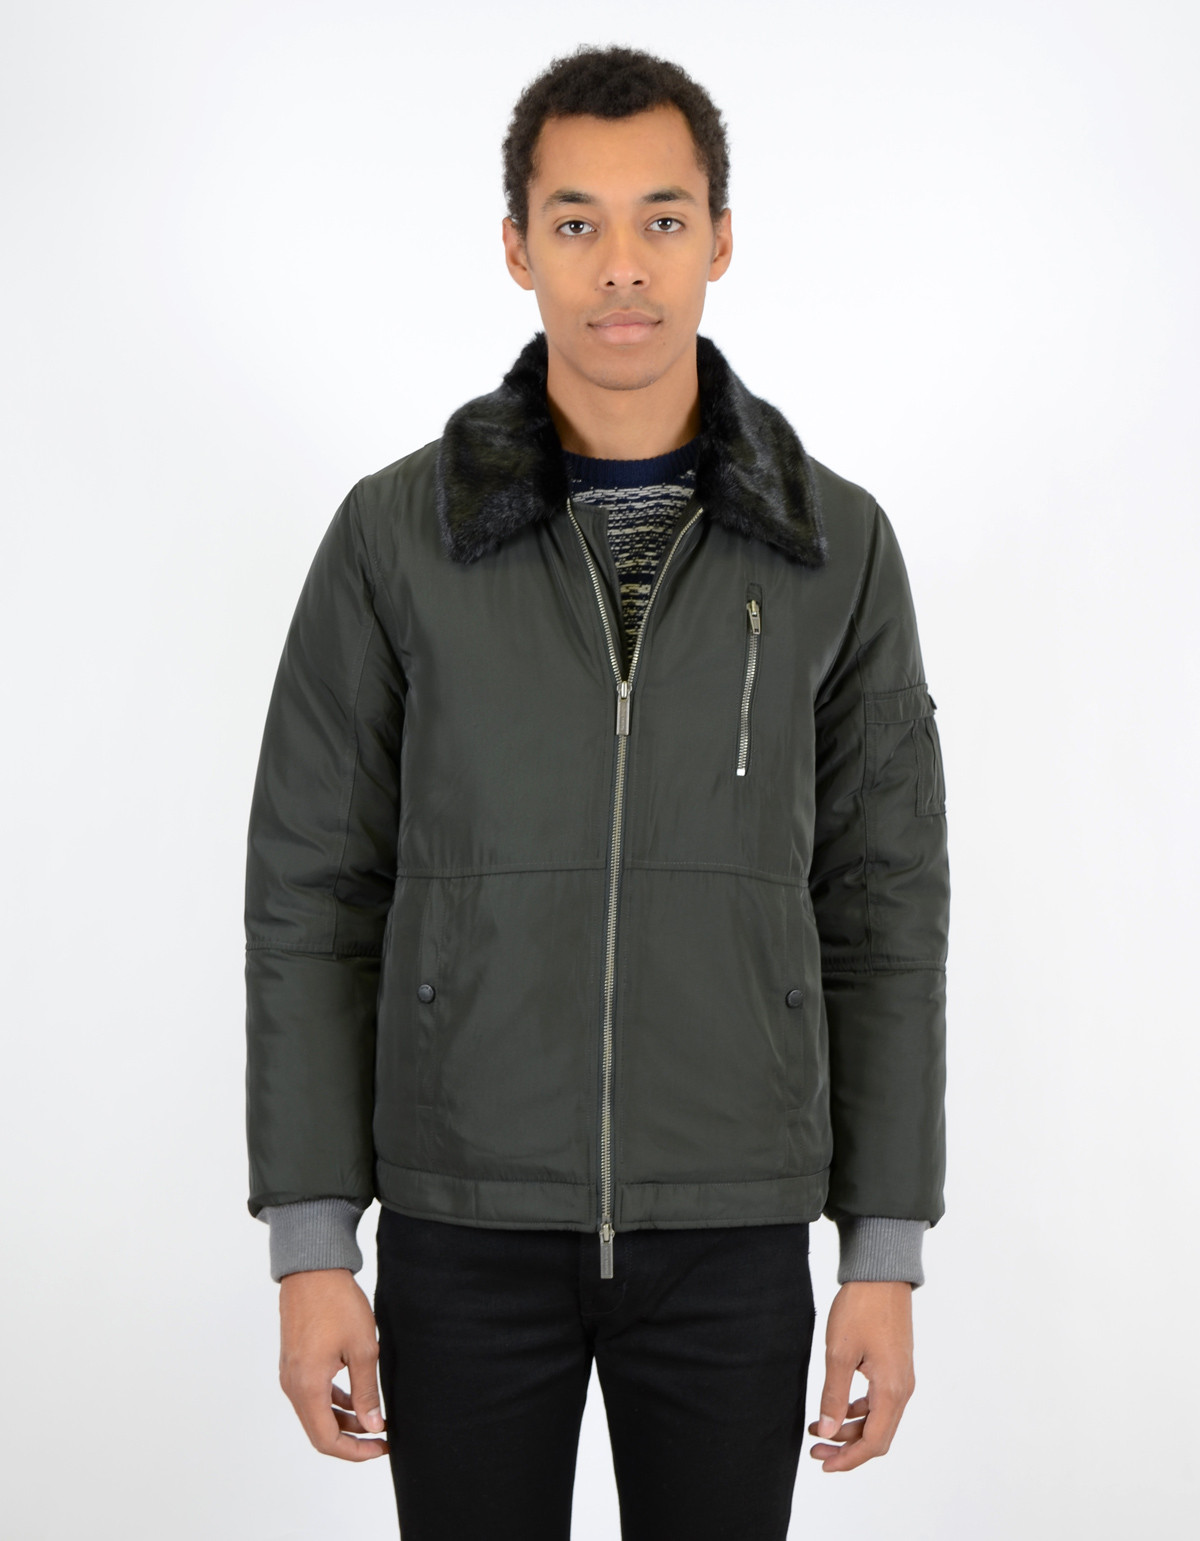 Youth Flight Jacket - JacketIn